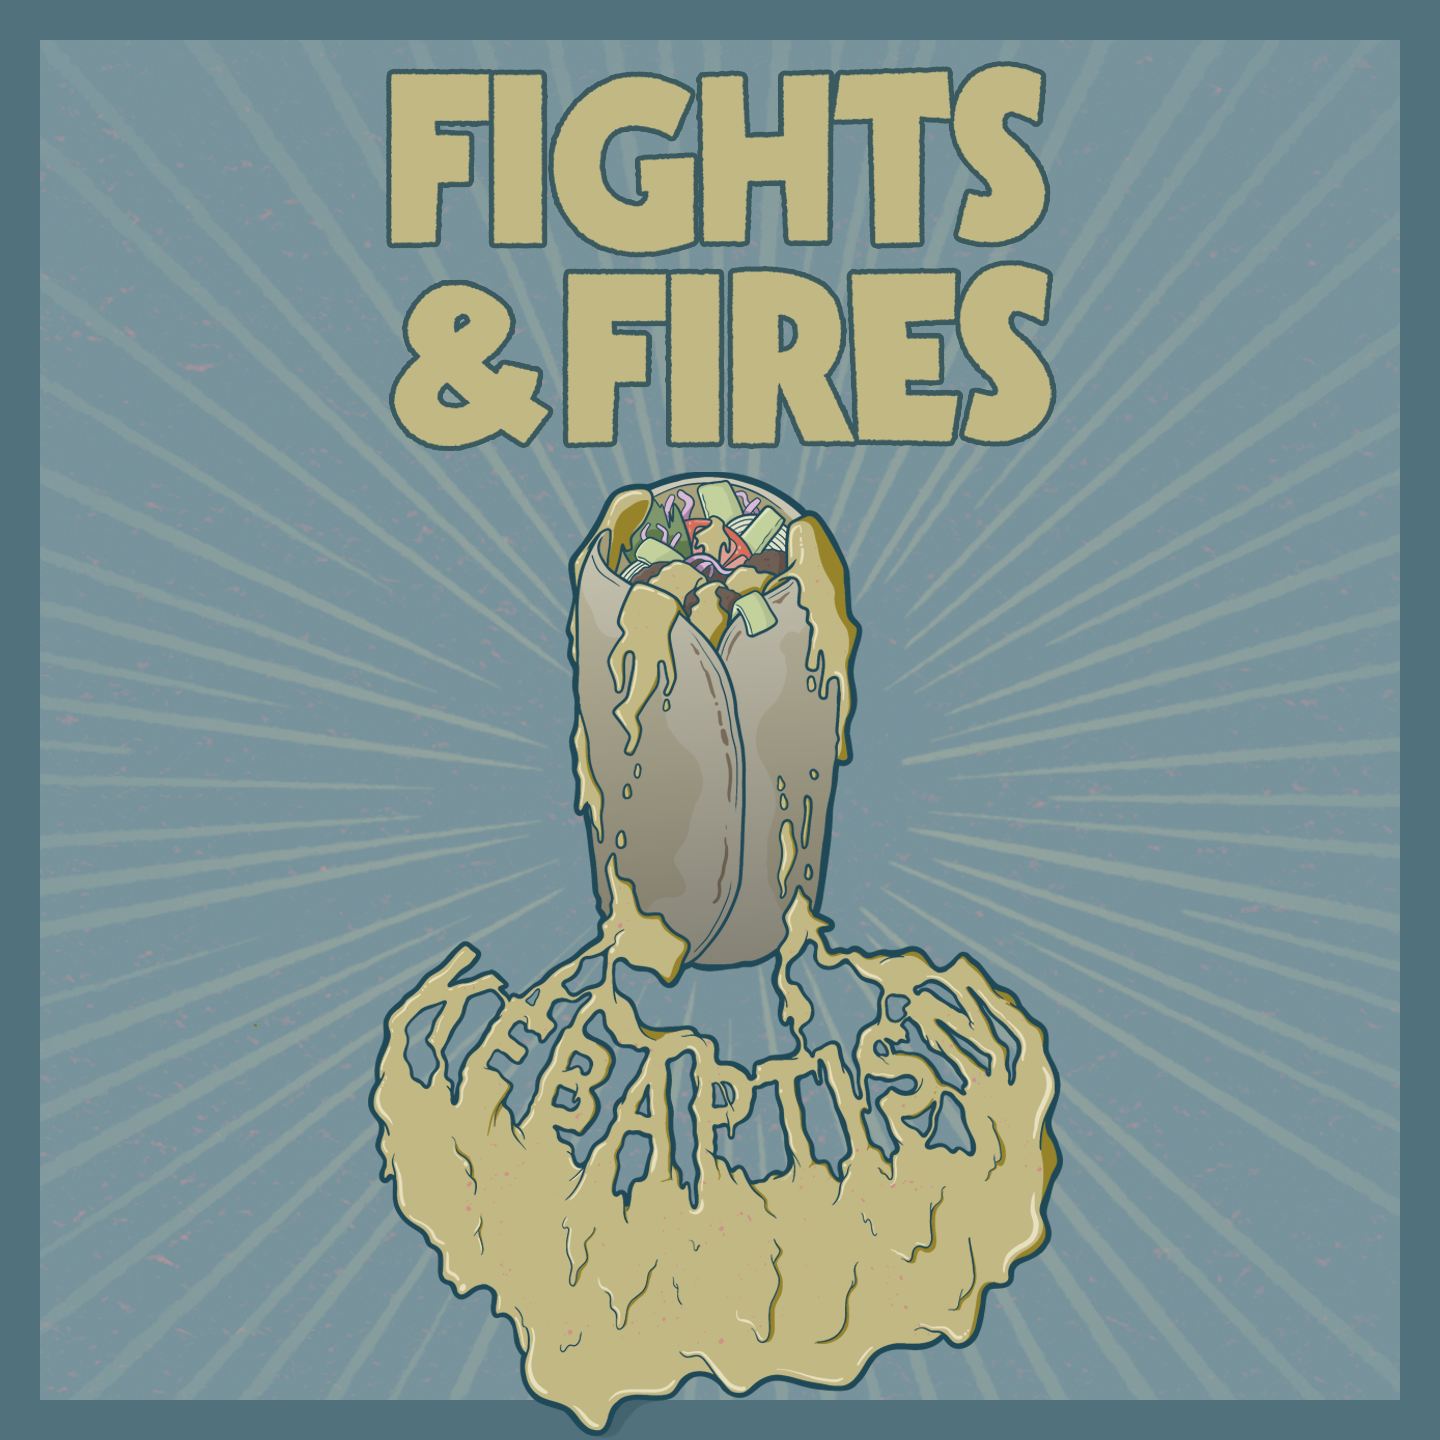 FIGHTS & FIRES